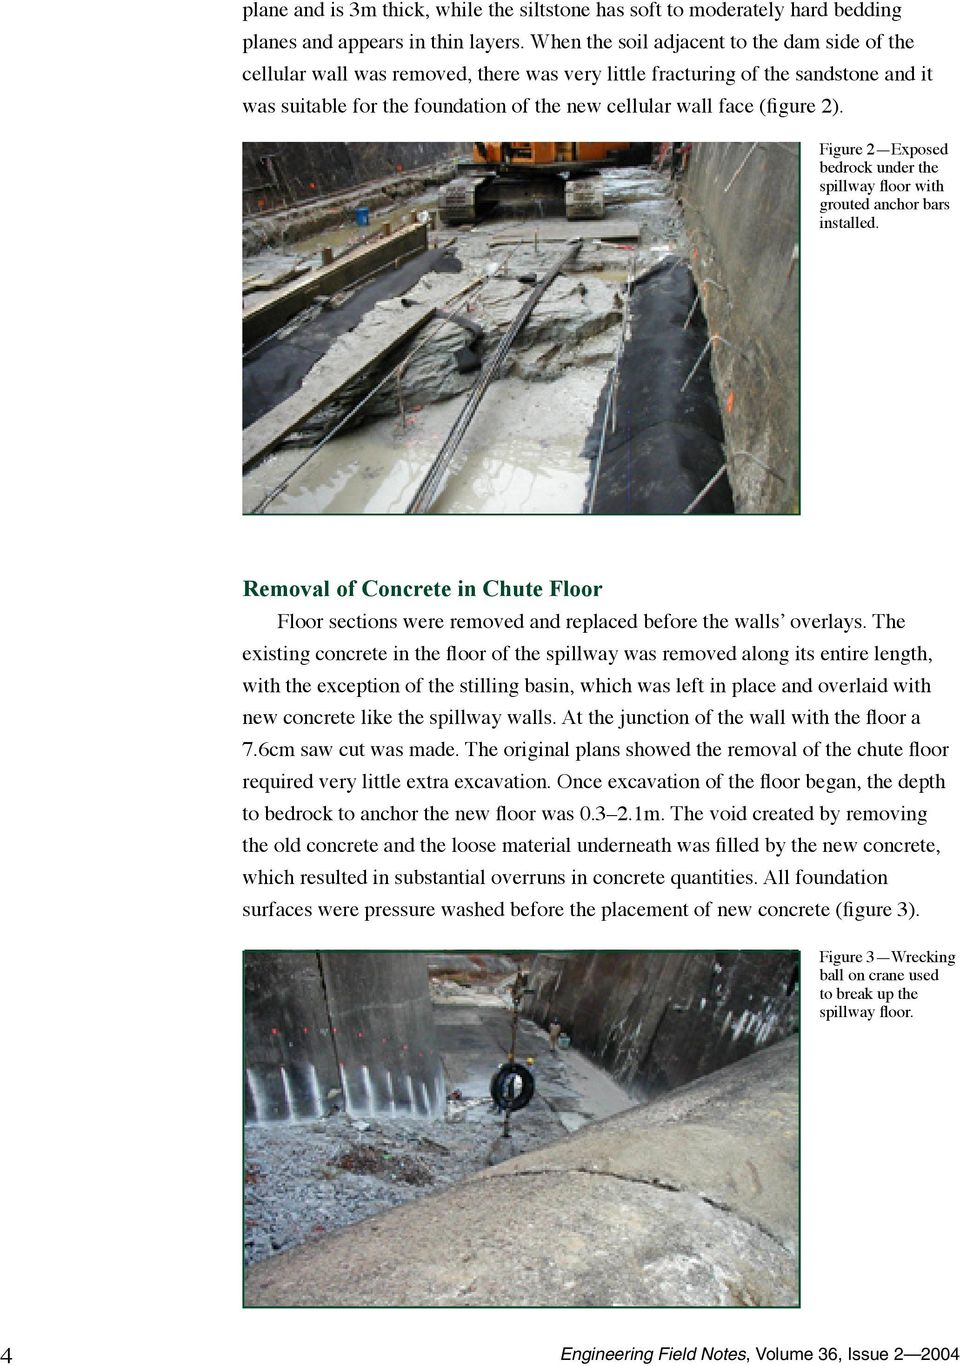 2). Figure 2 Exposed bedrock under the spillway floor with grouted anchor bars installed. Removal of Concrete in Chute Floor Floor sections were removed and replaced before the walls' overlays.